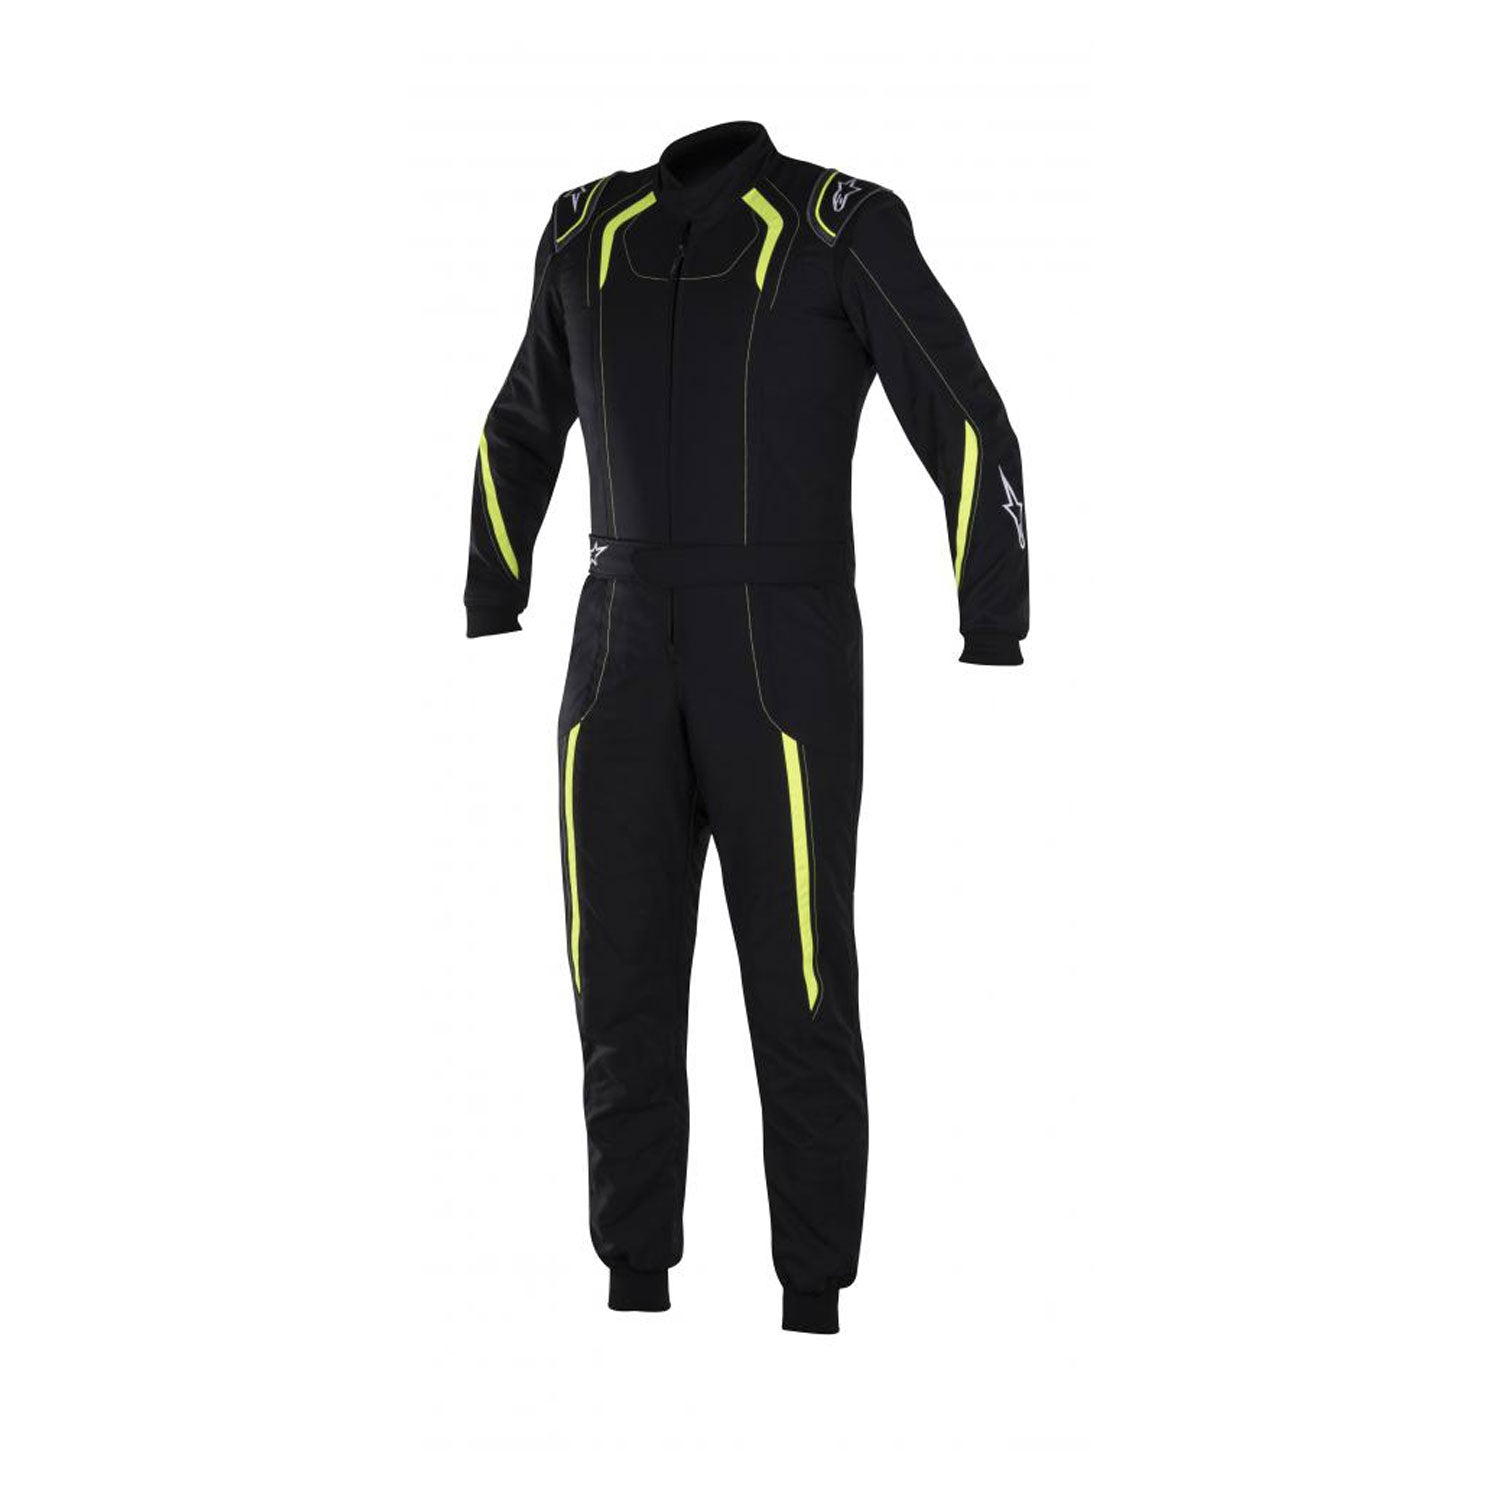 ALPINE STARS KMX-5 KARTING SUIT